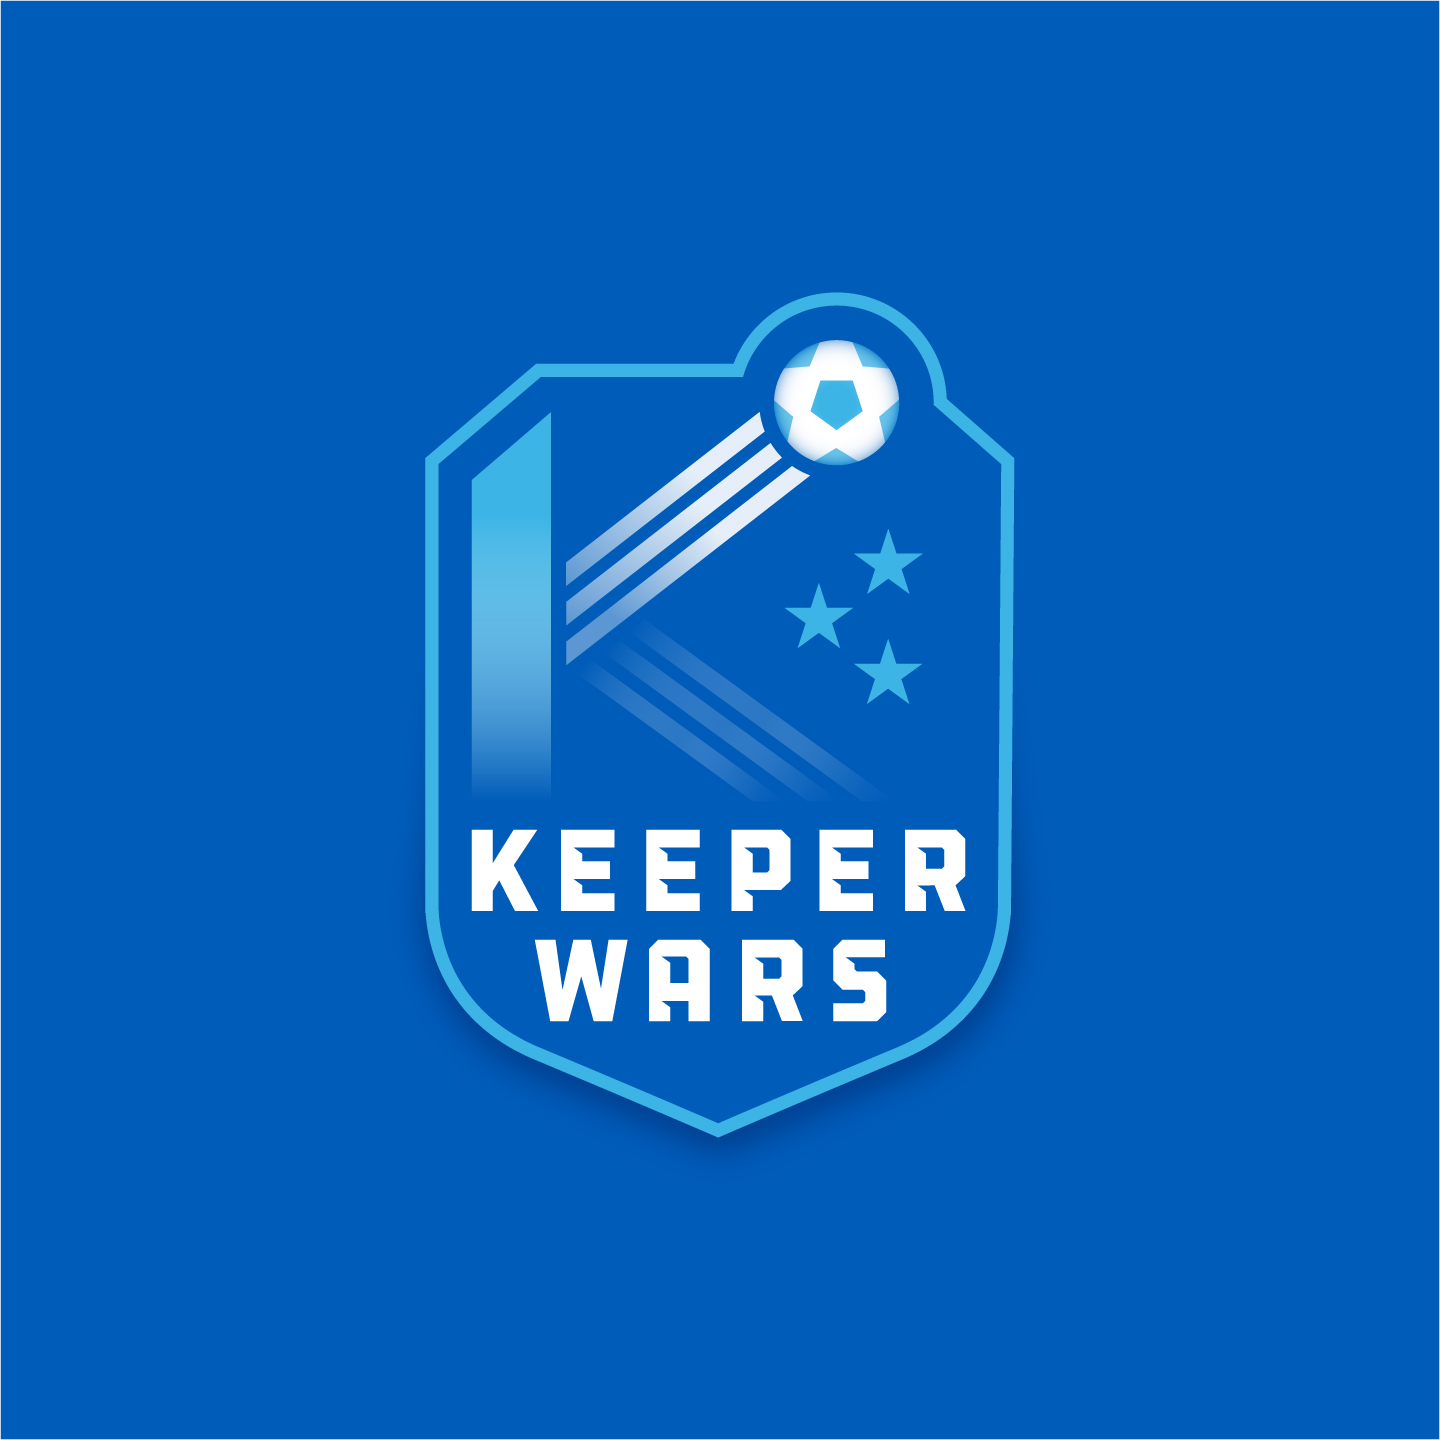 Keeper Wars Soccer Tournament Charity logo design by Hunter Oden of oden.house